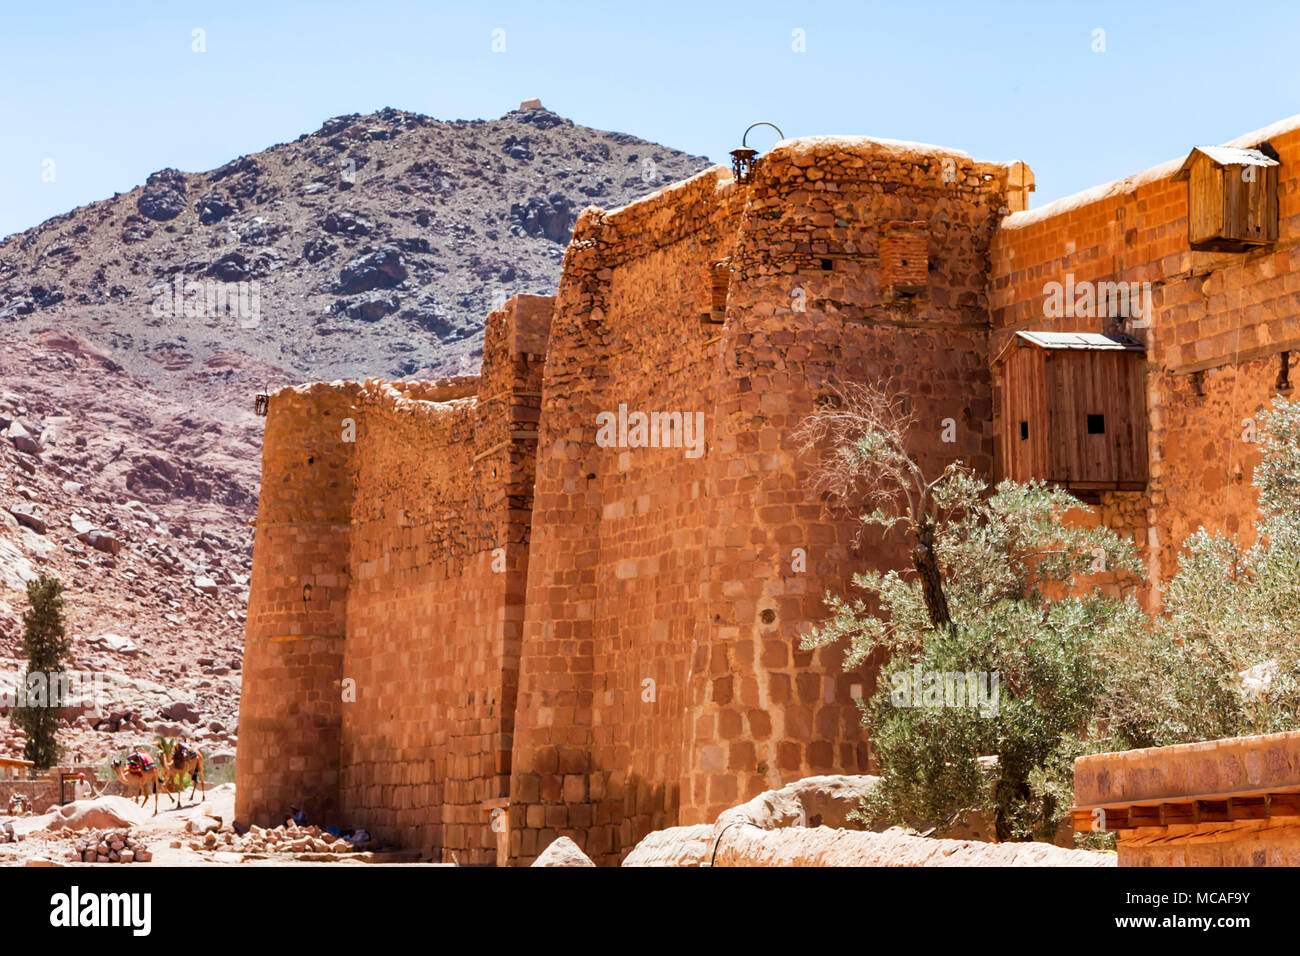 Wall of Saint Catherine's Monastery, Egypt - Stock Image